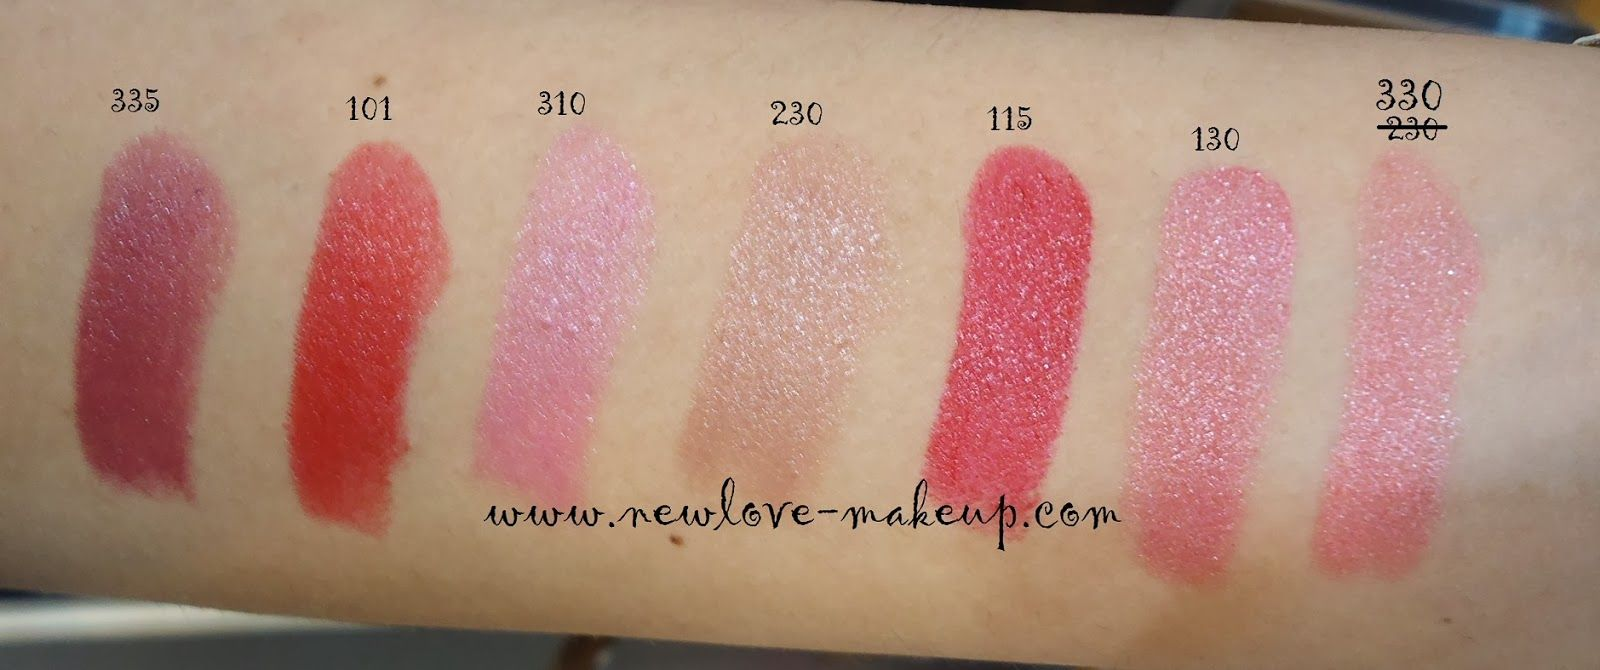 The Body Shop Color Crush Lipstick Swatches The body